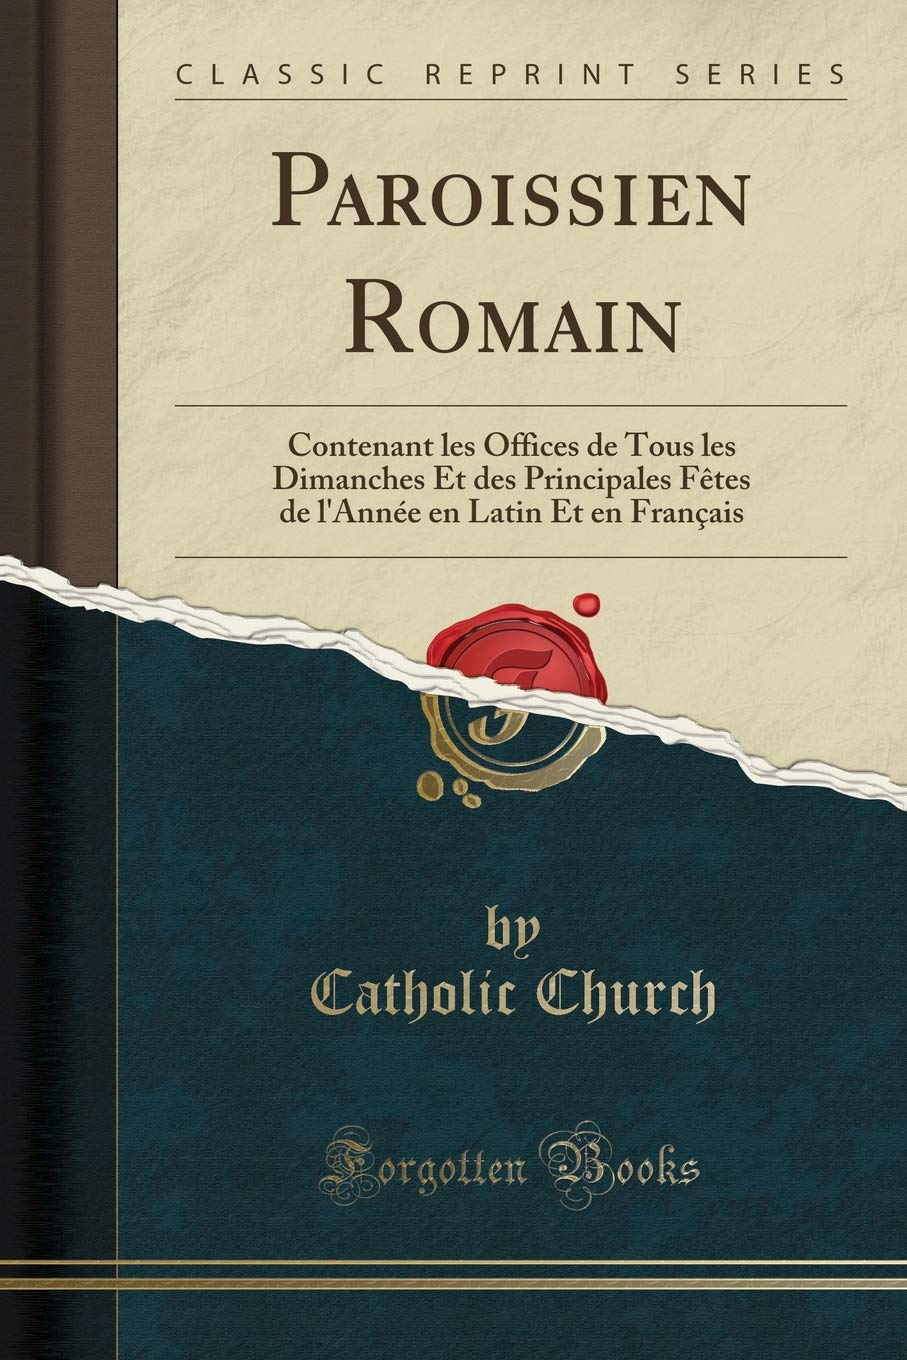 Paroissien Romain: Contenant Les Offices de Tous Les Dimanches Et Des Principales Fètes de l'Année En Latin Et En Français (Classic Reprint) Broché – 4 août 2018 Catholic Church Forgotten Books 0365733202 HISTORY / General